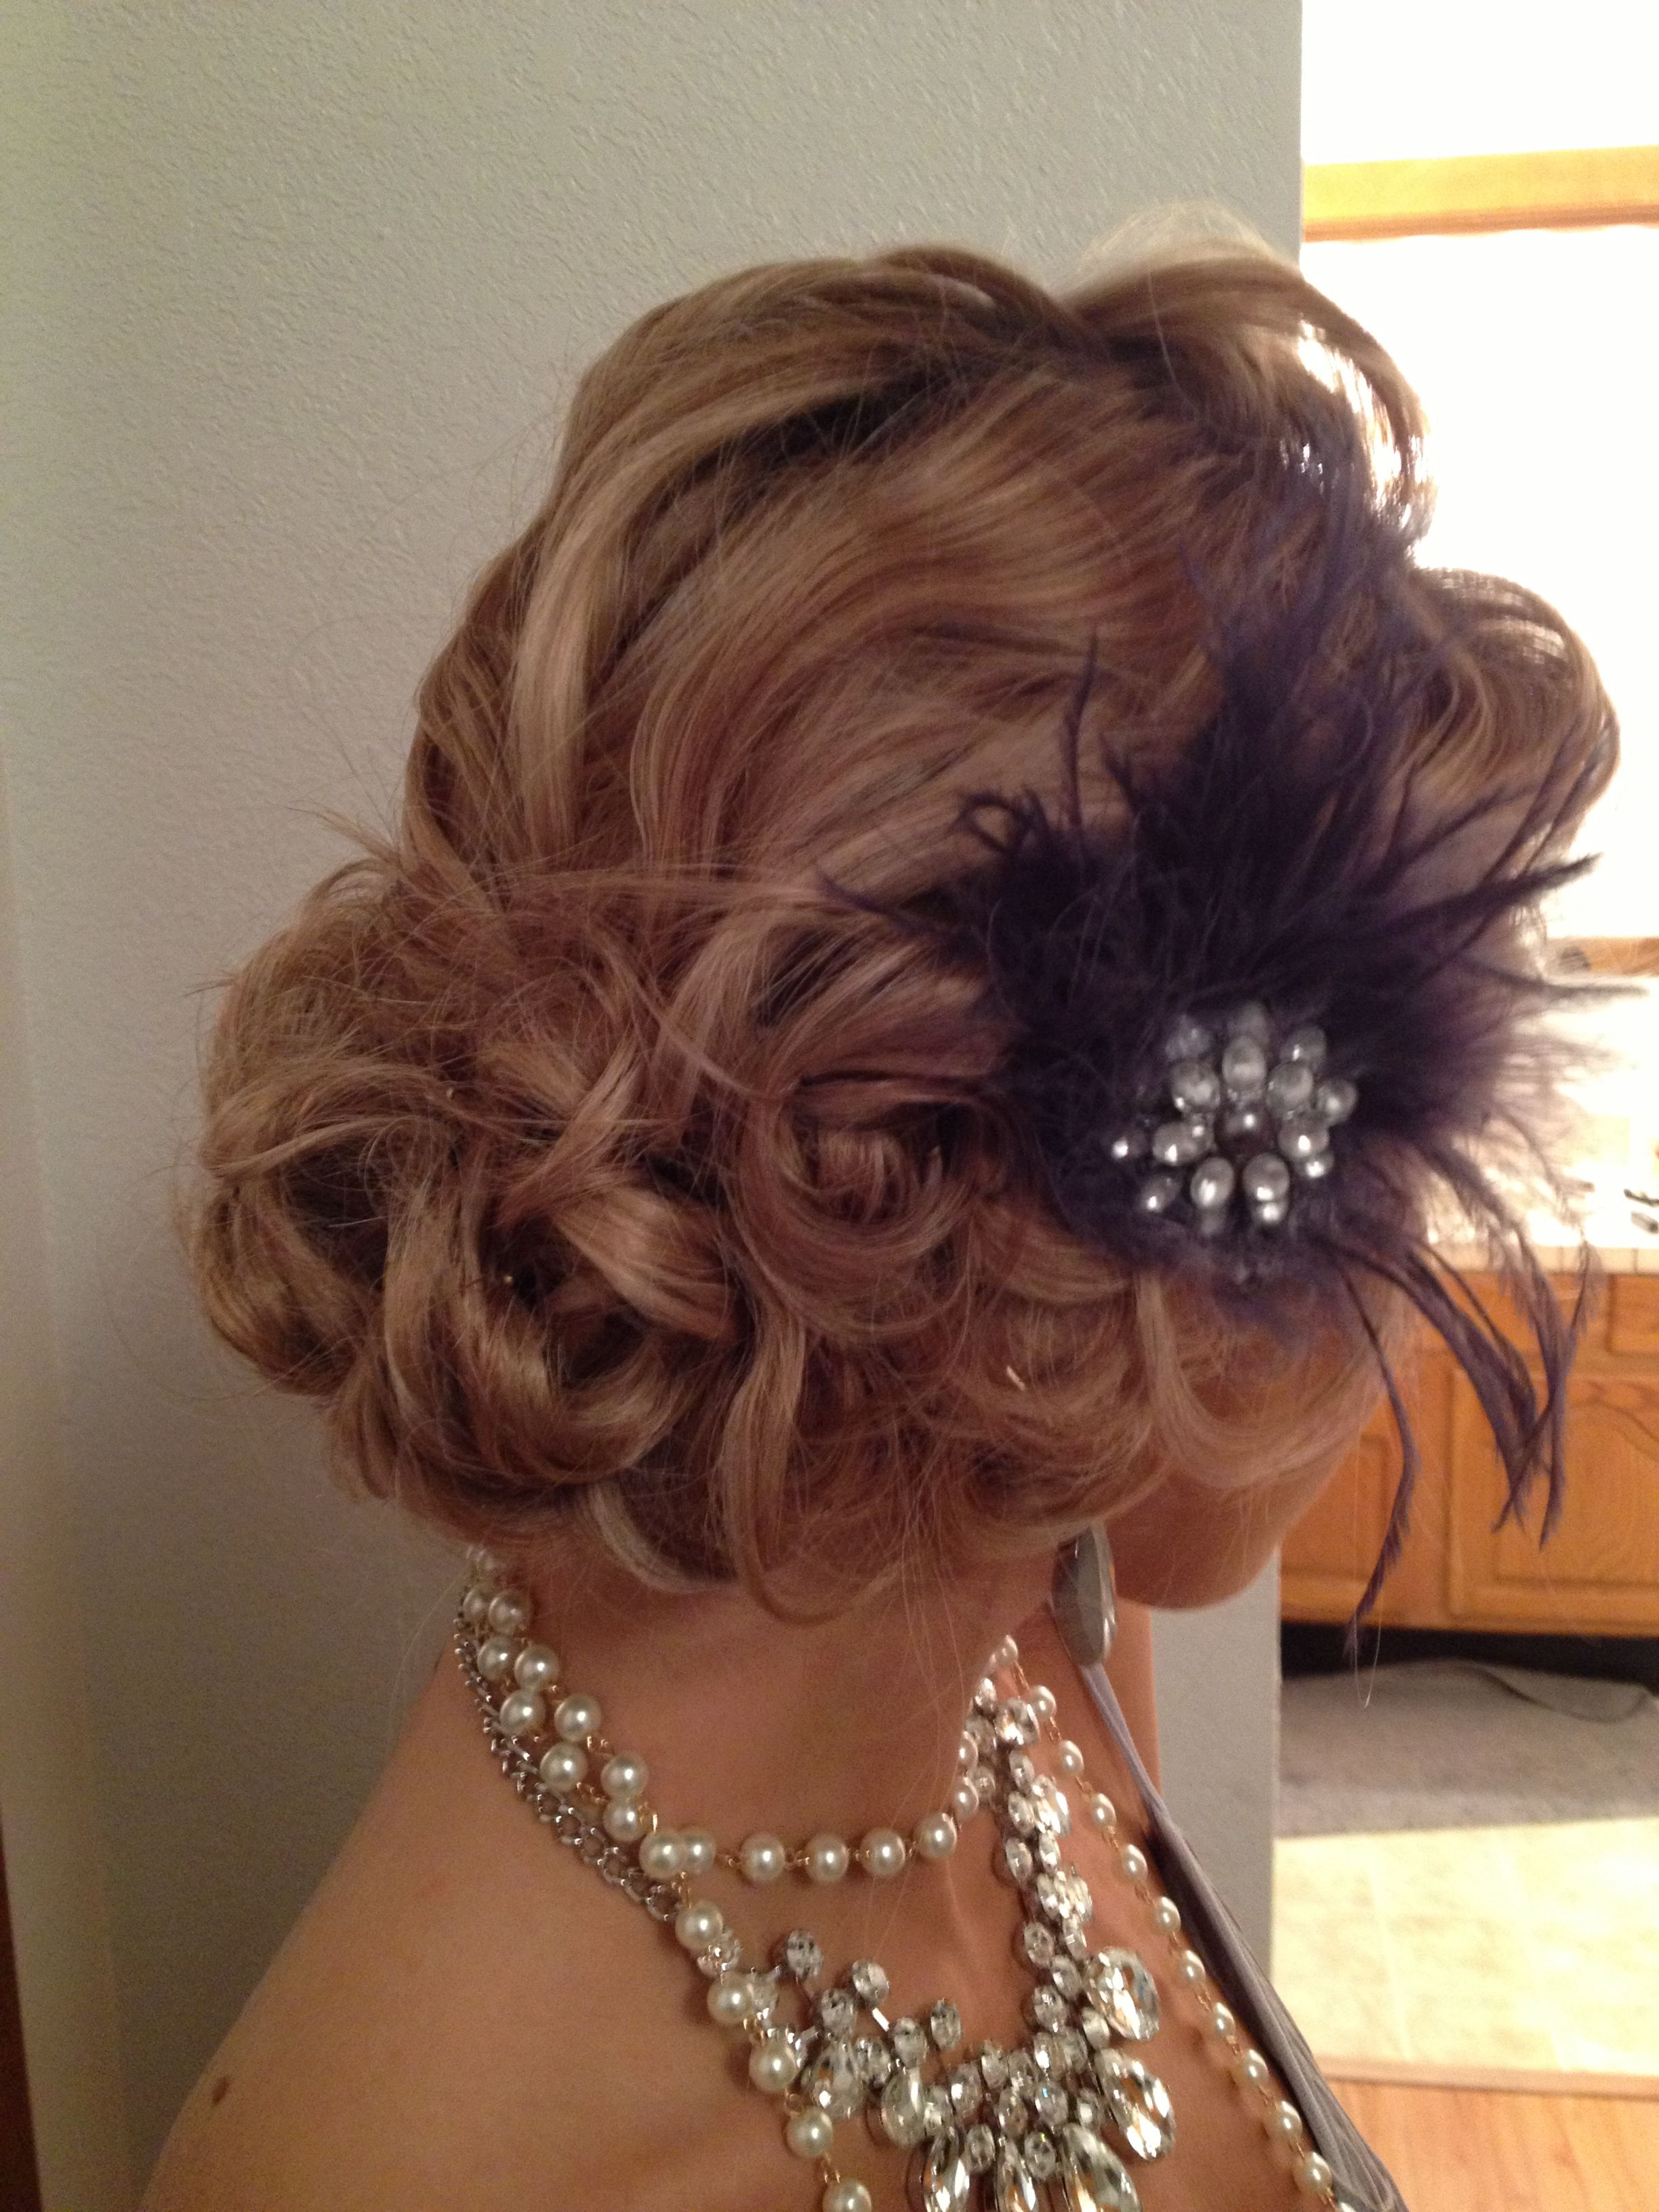 Pin By Christina Tacci On Beauty Gatsby Hair Long Hair Styles Long Hair Updo